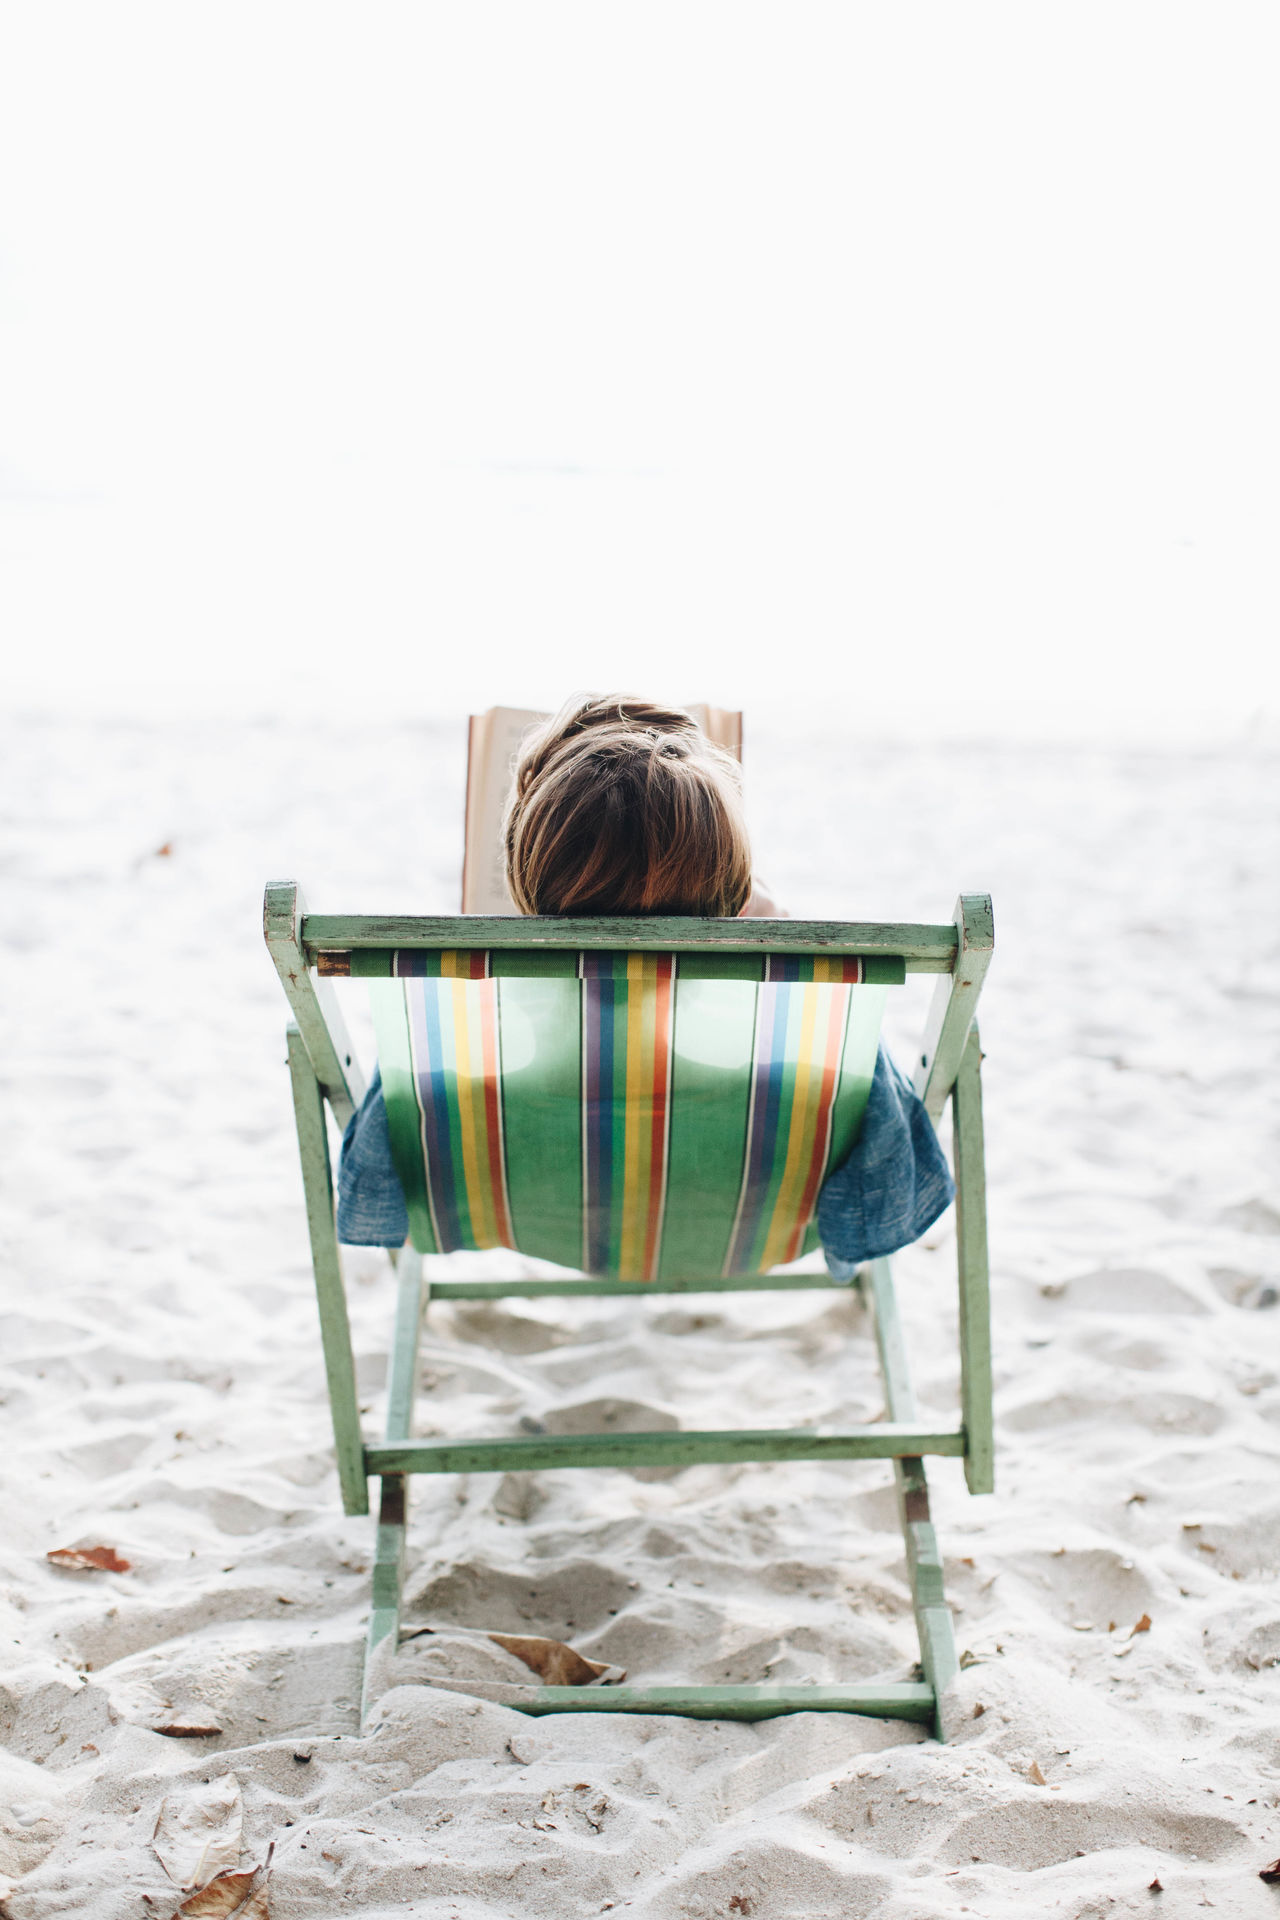 beach beach chair Bright Chair childhood day female horizon over water Nature one person outdoors people Reading Rear view relax relaxation sand sea sky water white Woman woman reading